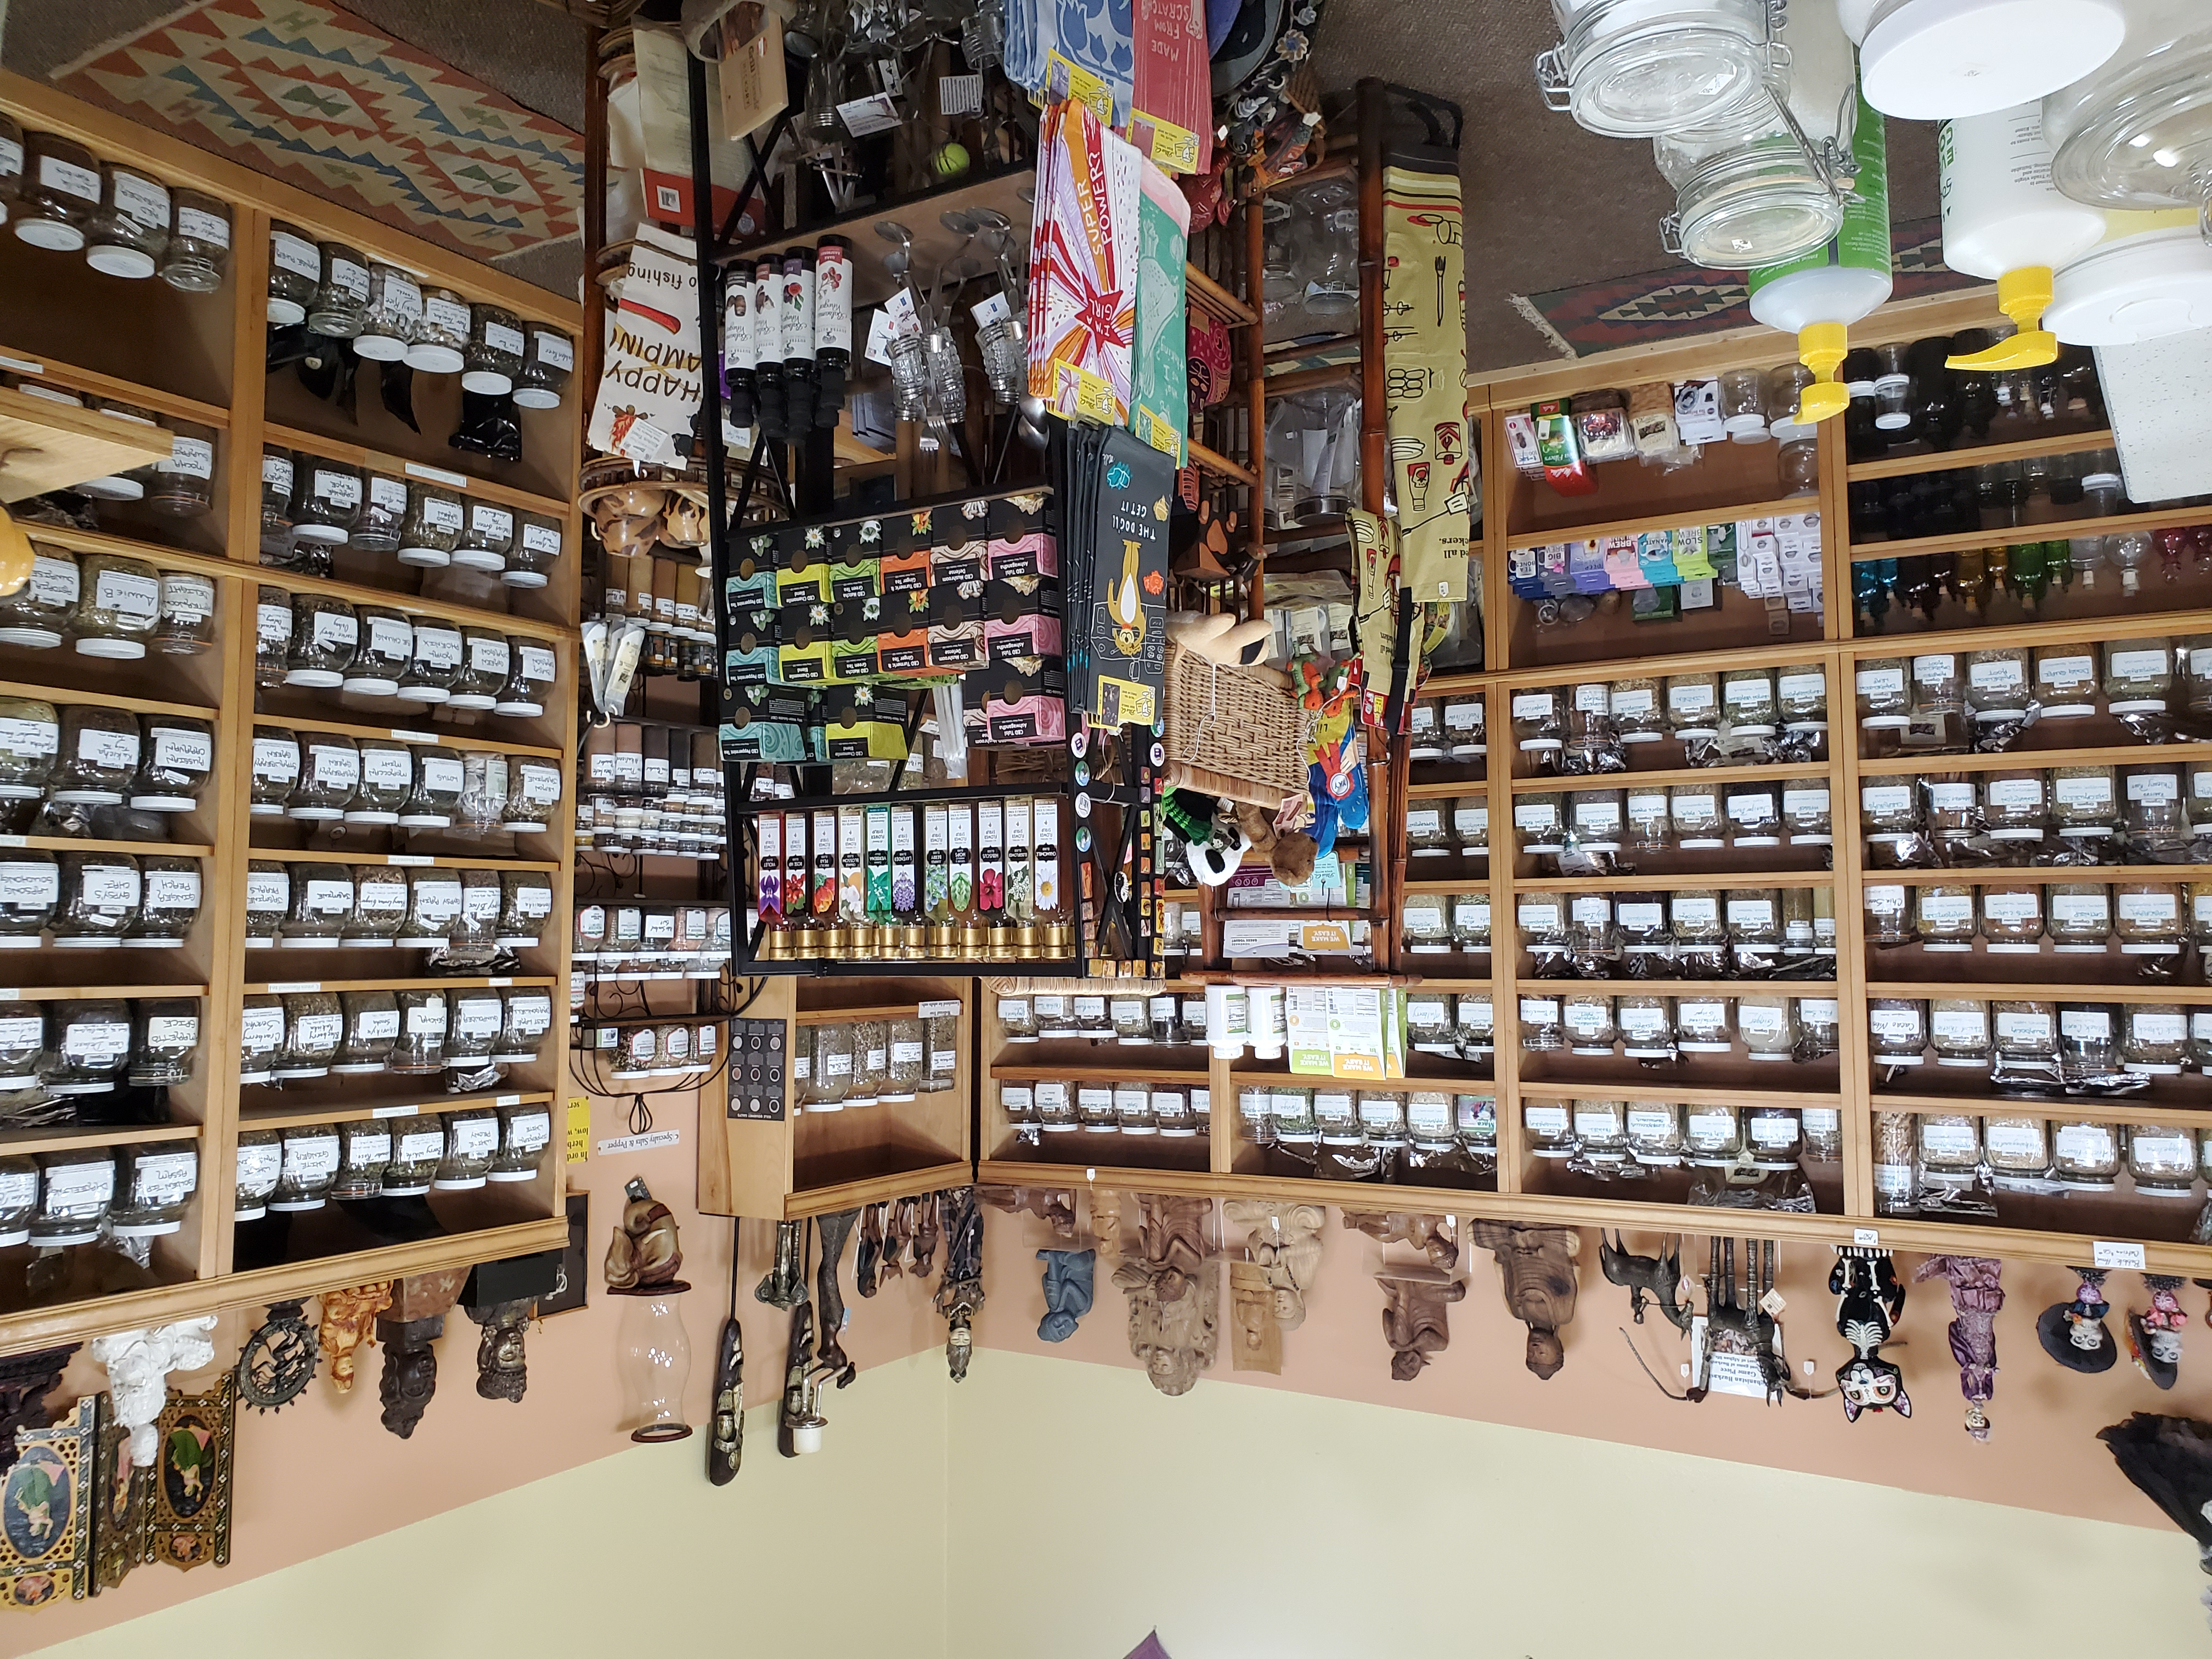 A Gypsy's Whimsy Herbal Apothecary